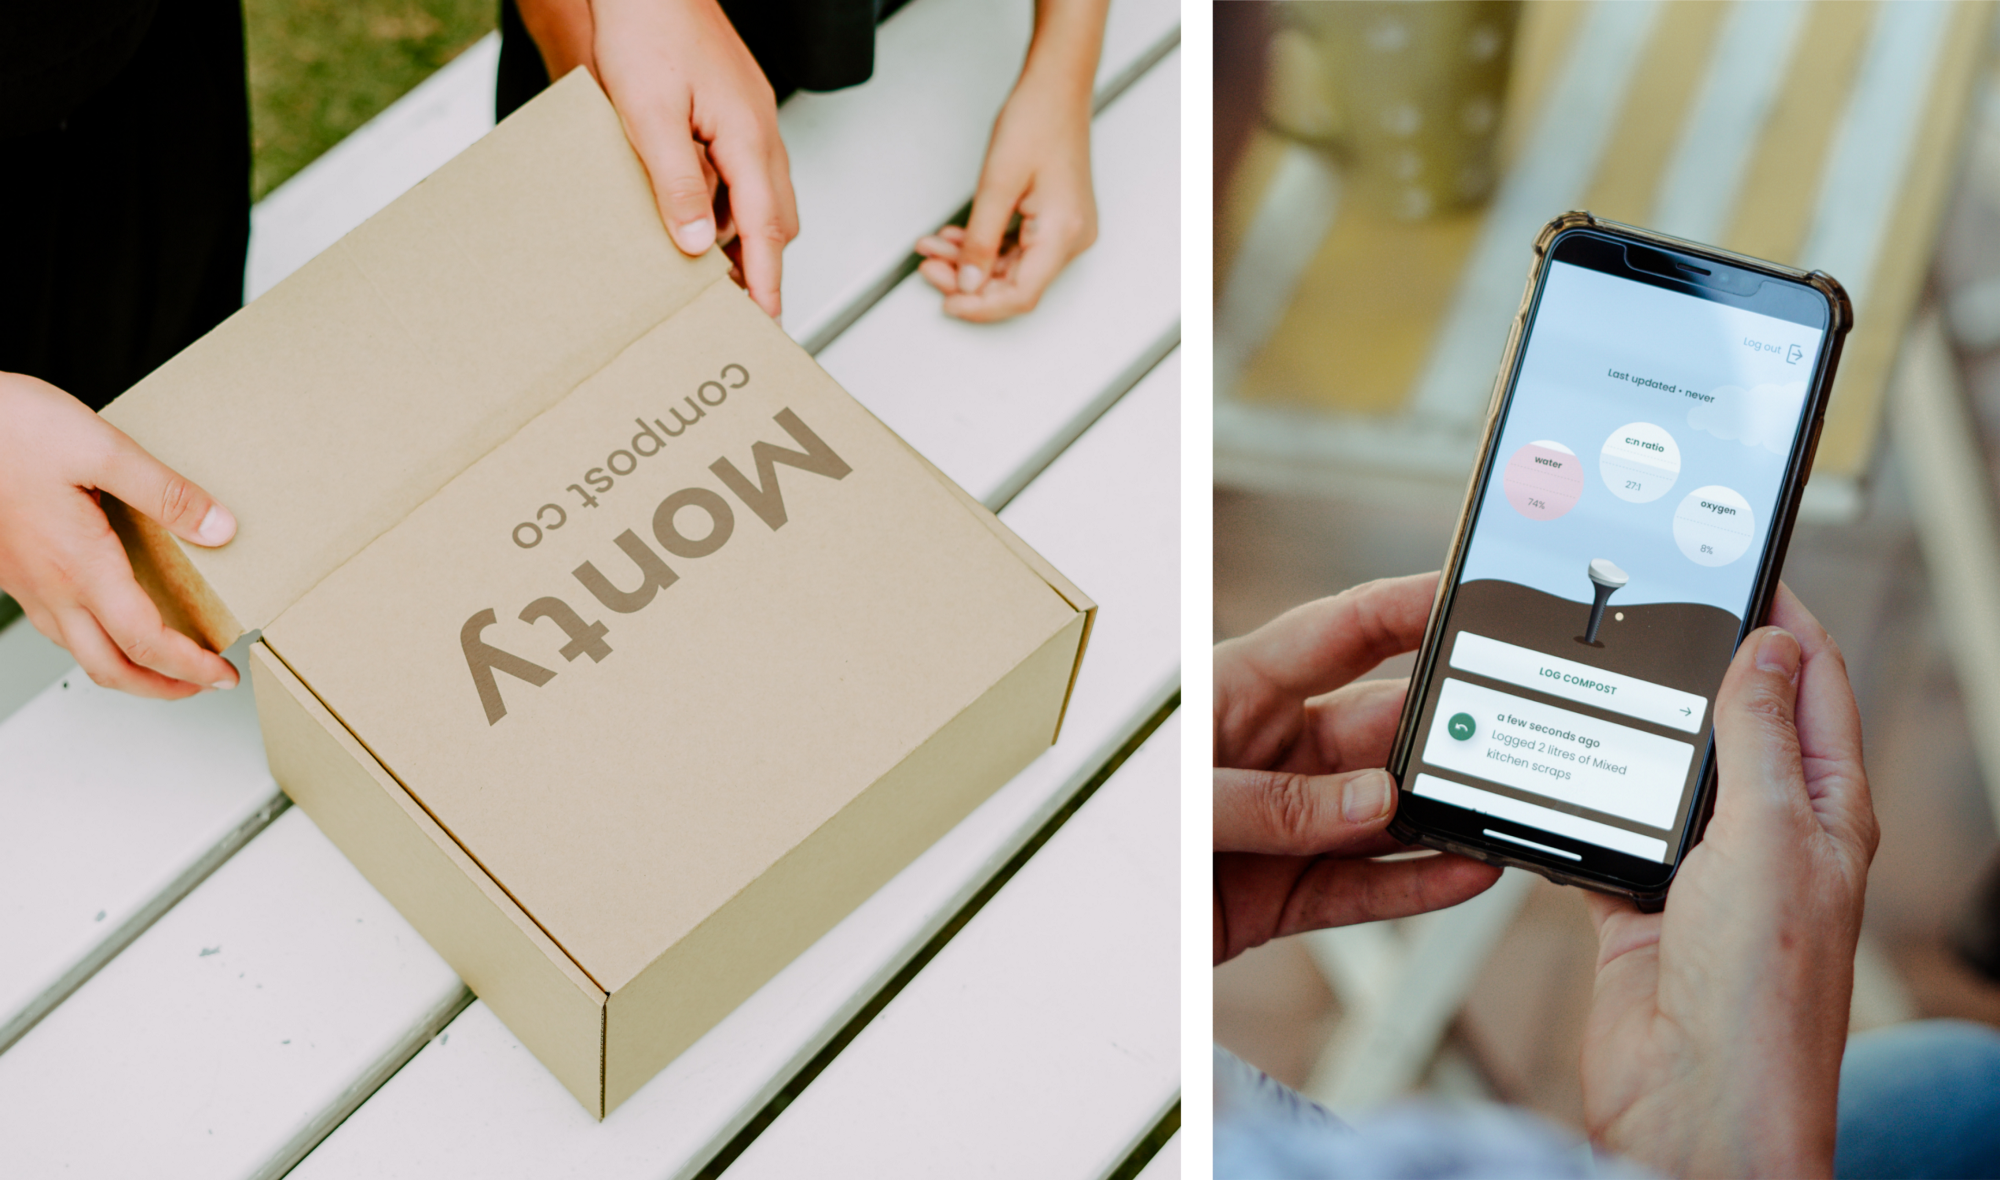 Left image: A closed Monty box with keen hands peeling it open. Right image: Hands holding a phone showing the Monty app, with playful UI showing little stats and notifications.